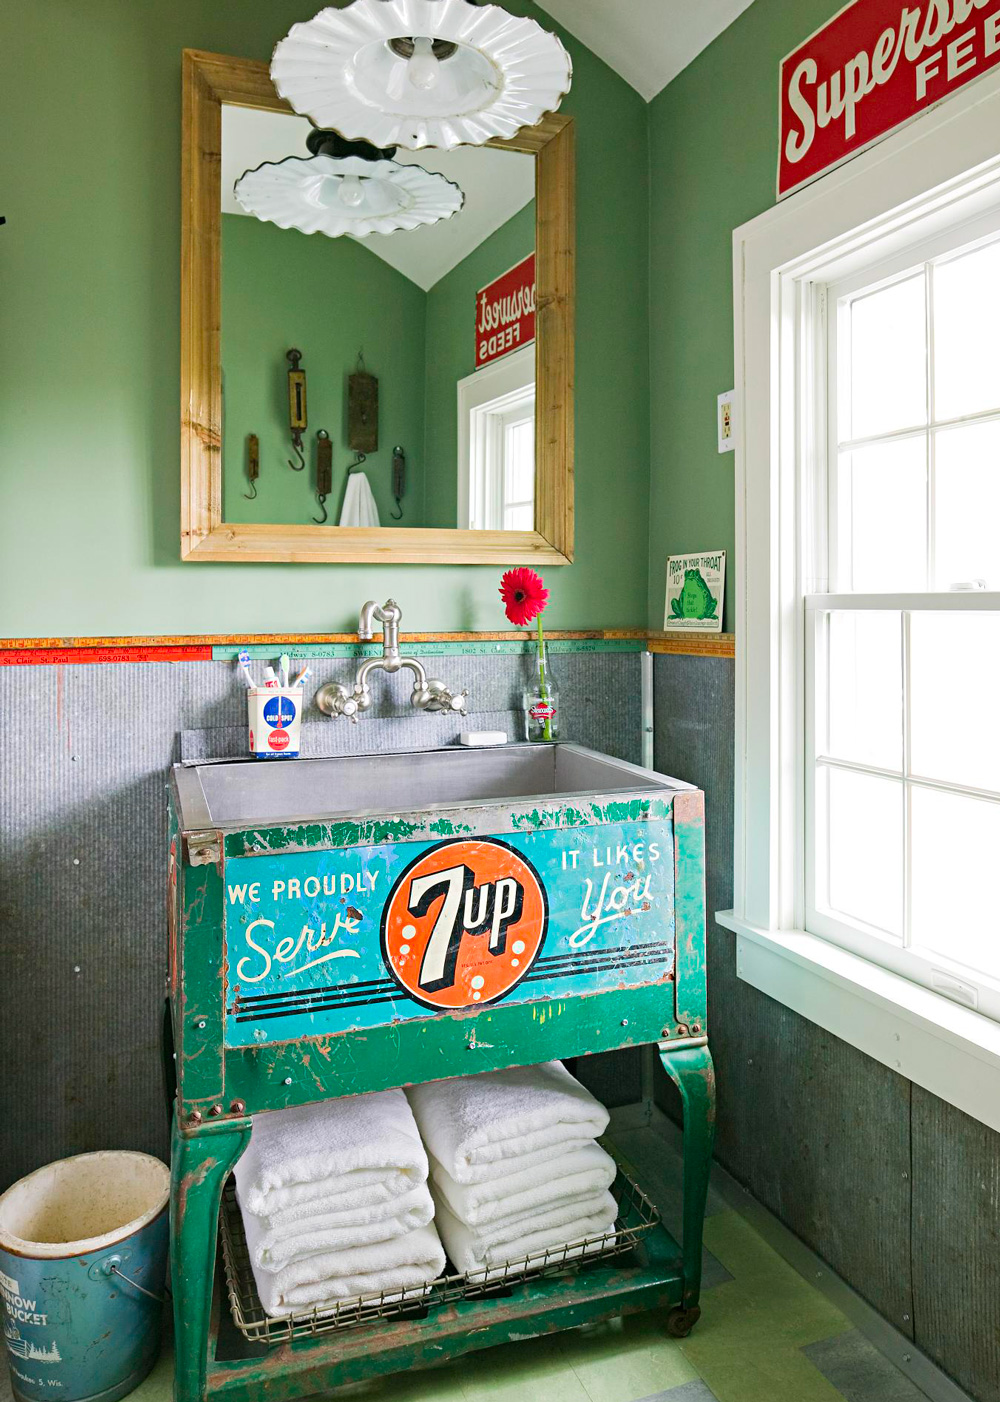 Vintage finds for a bathroom